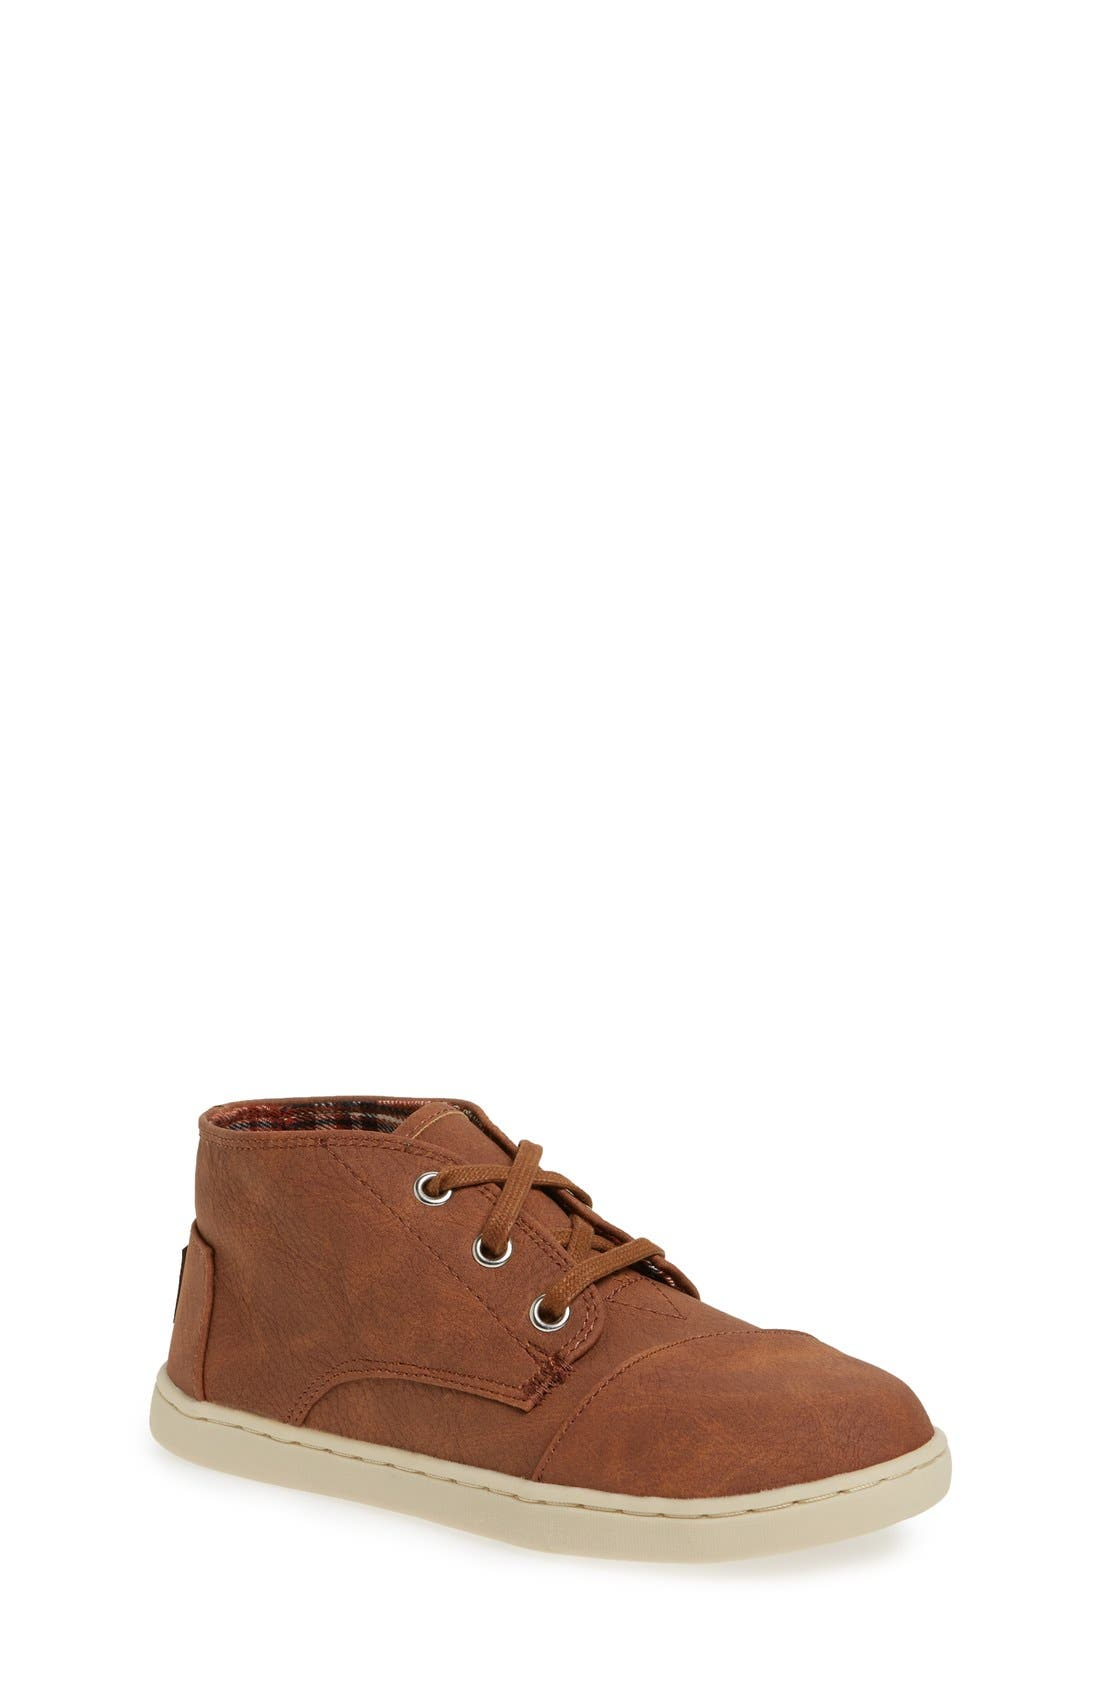 Main Image - TOMS 'Paseo - Youth' Mid Boot (Toddler, Little Kid & Big Kid)